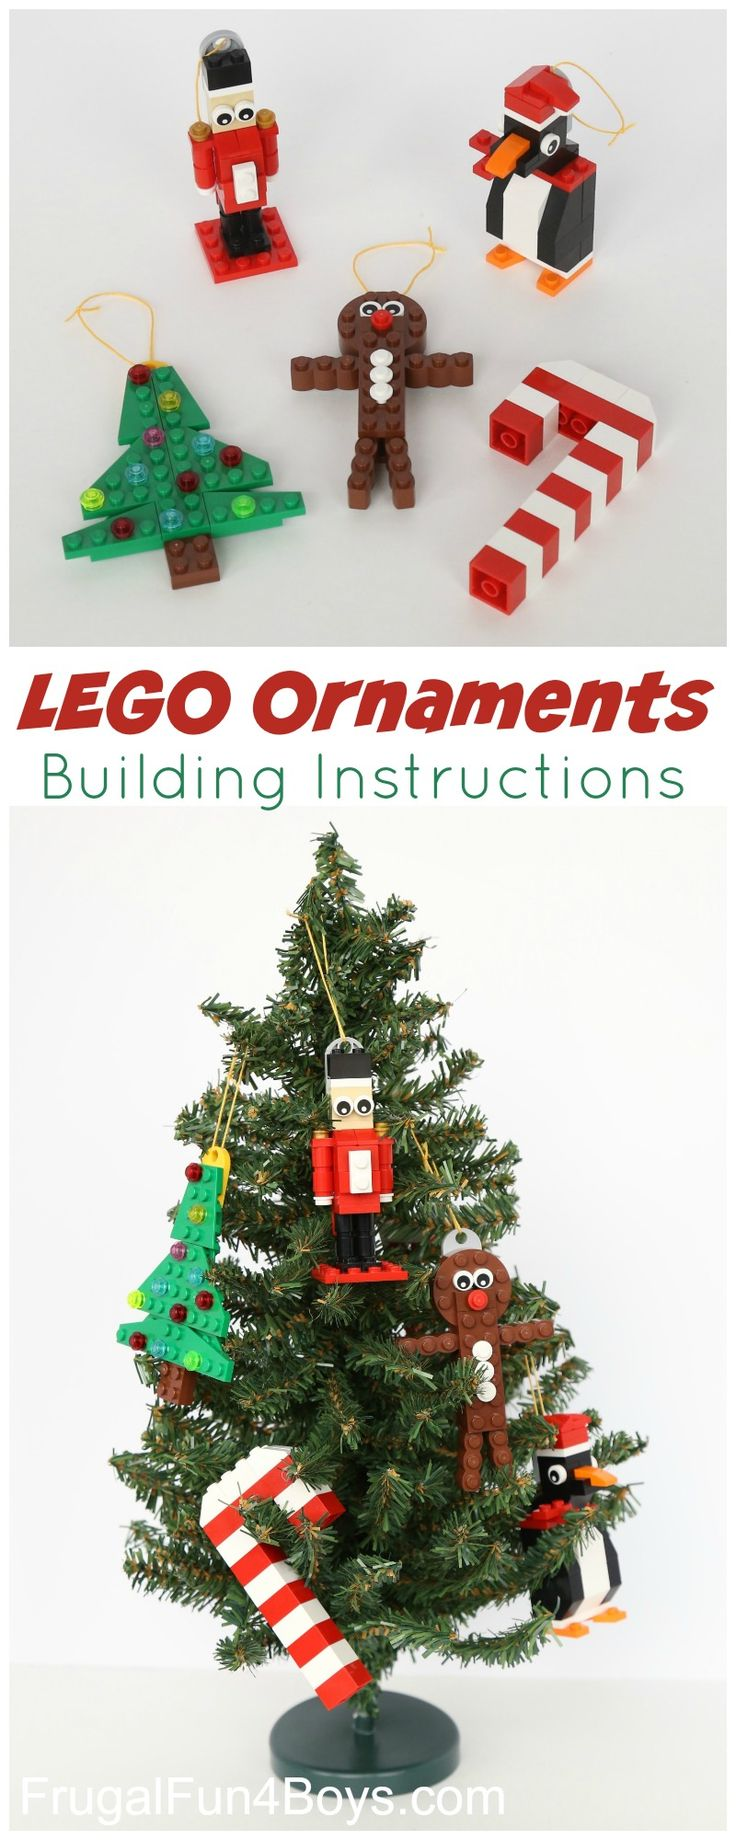 Five Lego Christmas Ornaments To Make (with Building Instructions!)